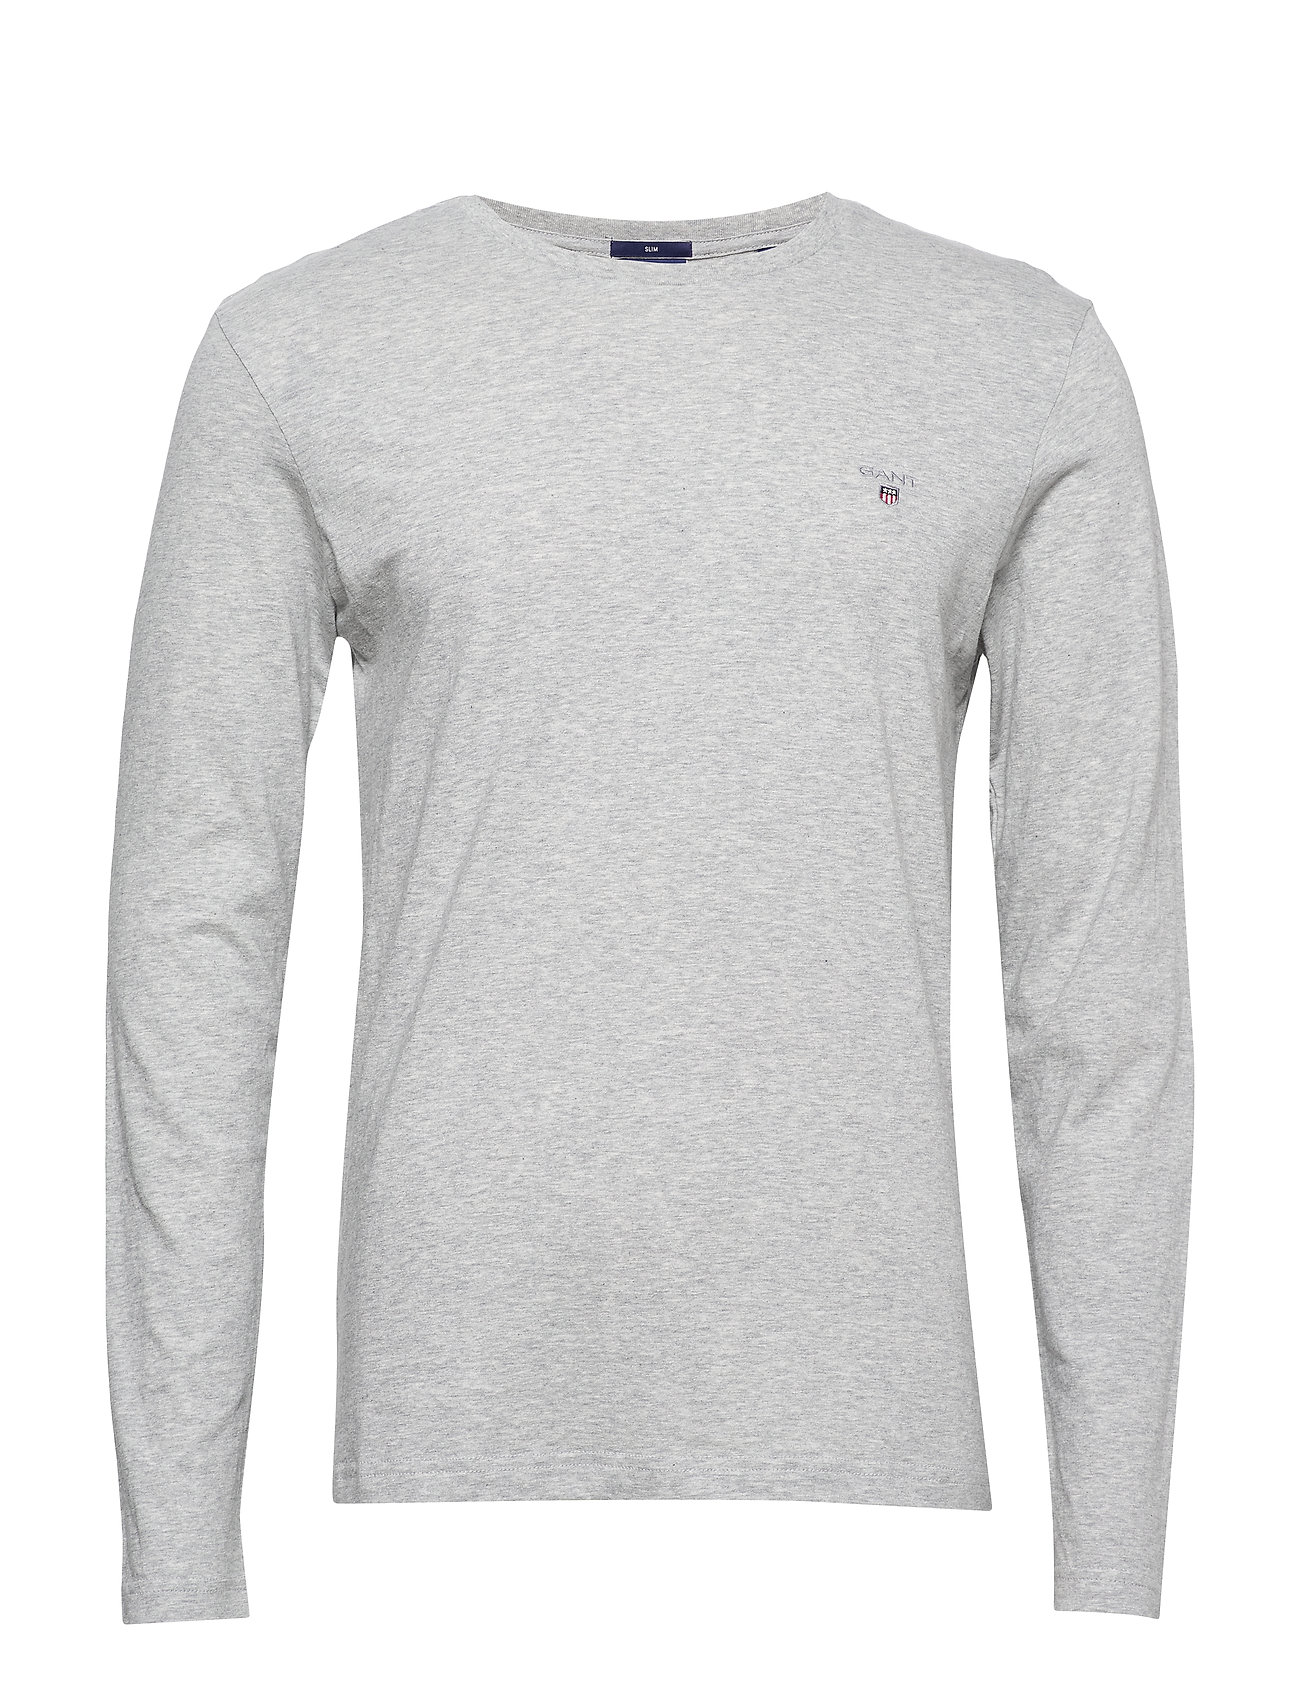 Gant THE ORIGINAL SLIM LS T-SHIRT - LIGHT GREY MELANGE